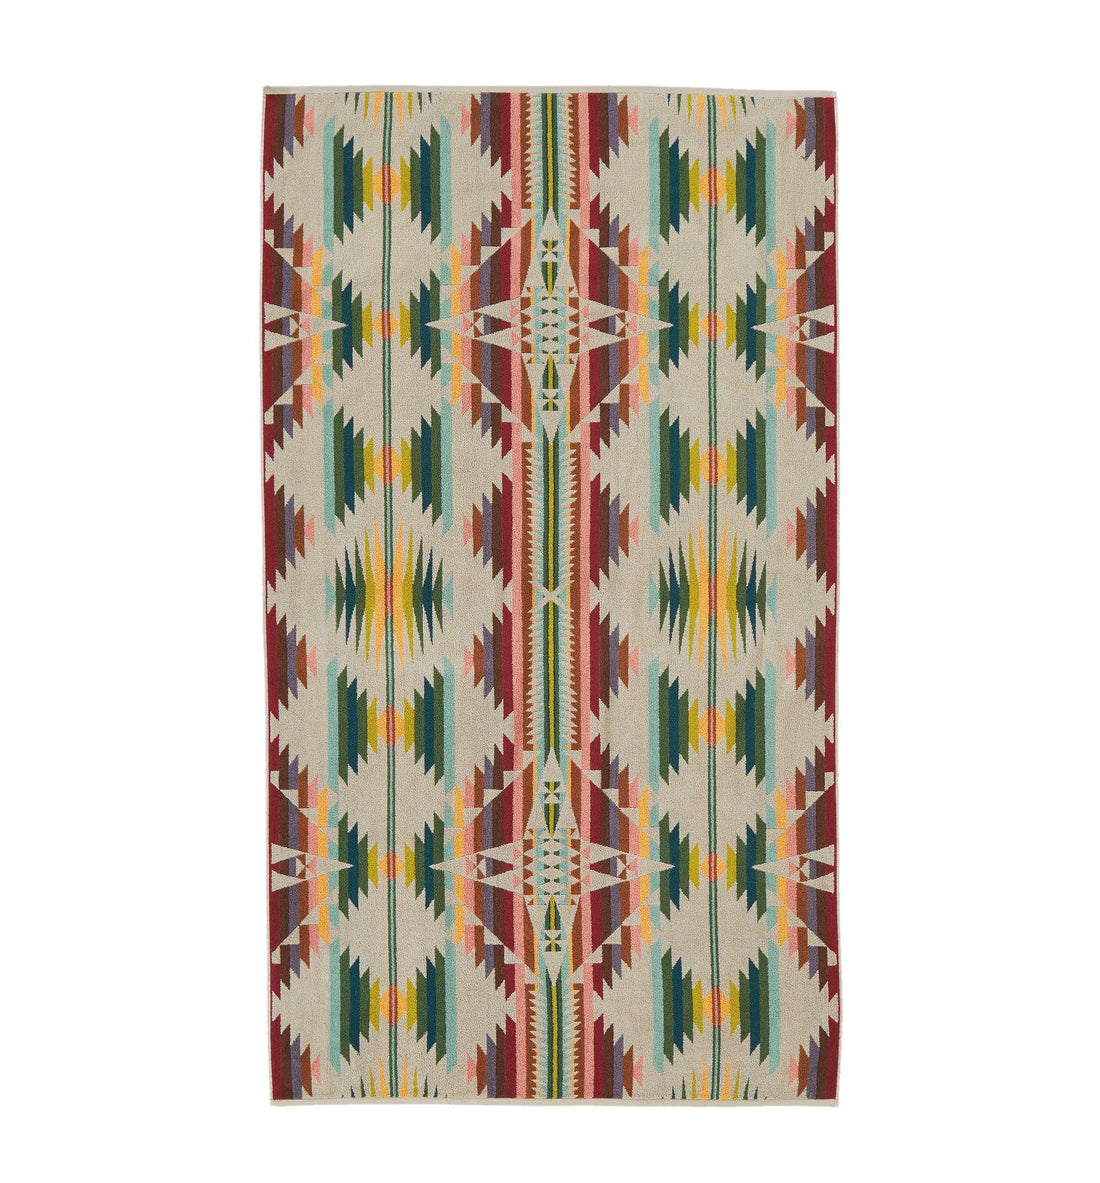 Pendleton Woolen Mills Oversized Jacquard Towel - Falcon - Outdoor Living/Travel - Iron and Resin